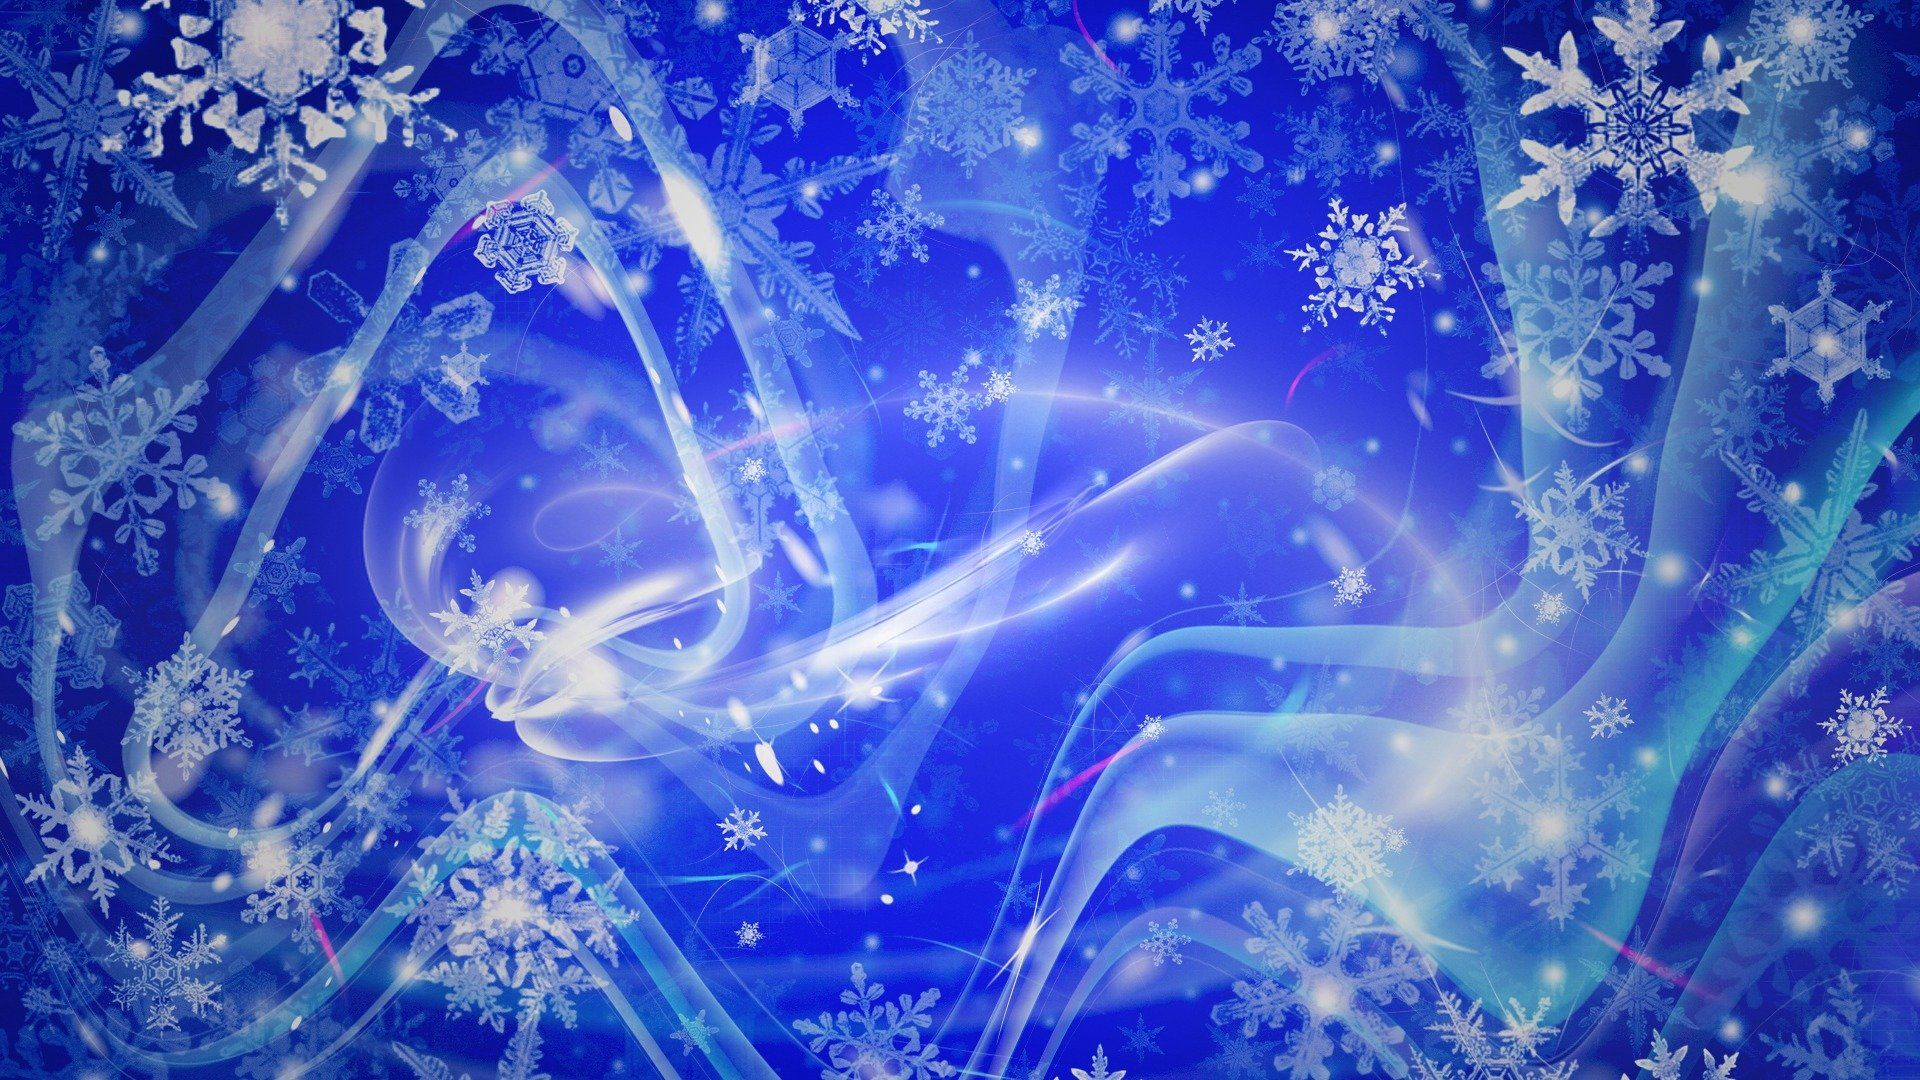 New Year With Snowflakes Background